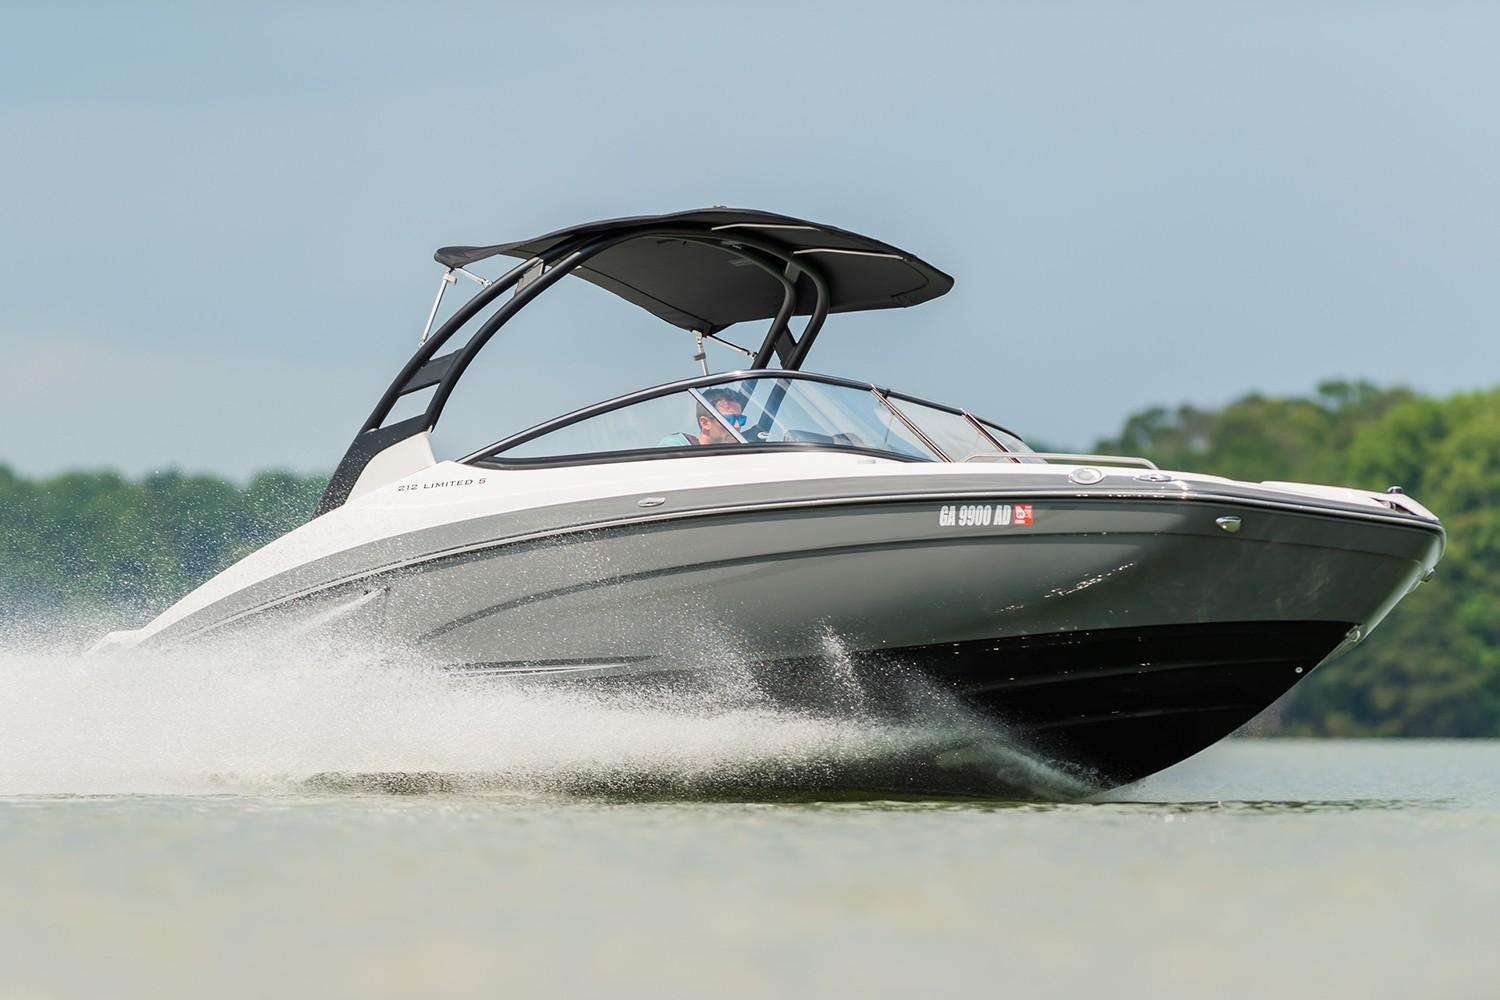 2019 Yamaha 212 Limited S in Lafayette, Louisiana - Photo 3